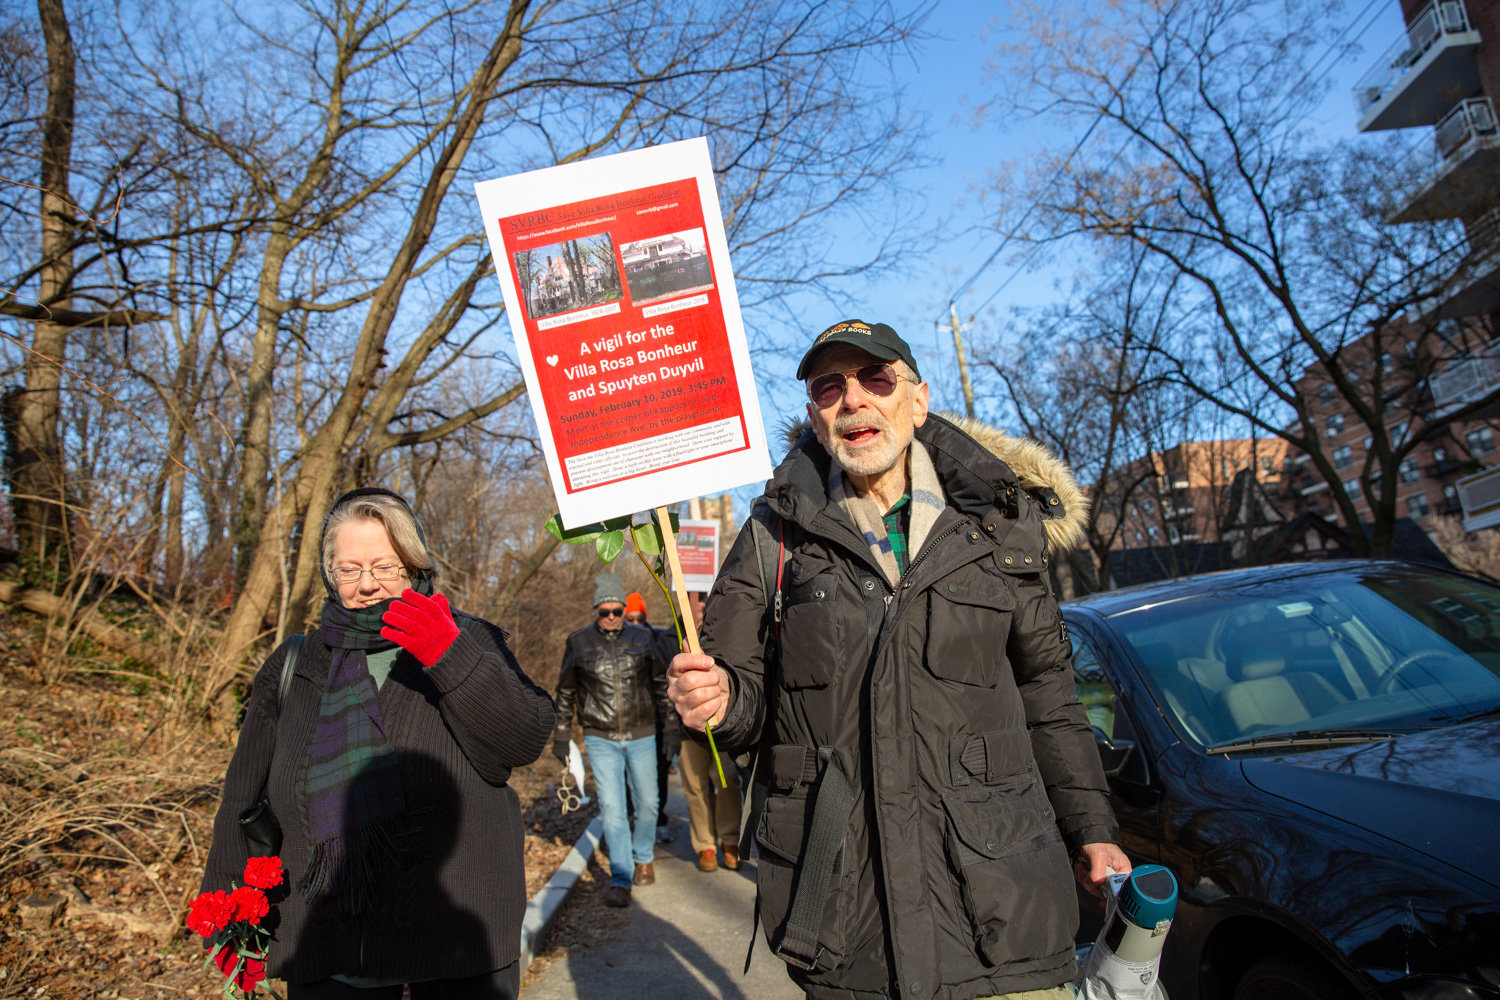 Perry Brass, right, and Jennifer Scarlott lead a group of community members toward the Villa Rosa Bonheur for a vigil in support of the historic apartment building in February. Brass lives in the Villa Rosa's sister building, Villa Charlotte Bronte.